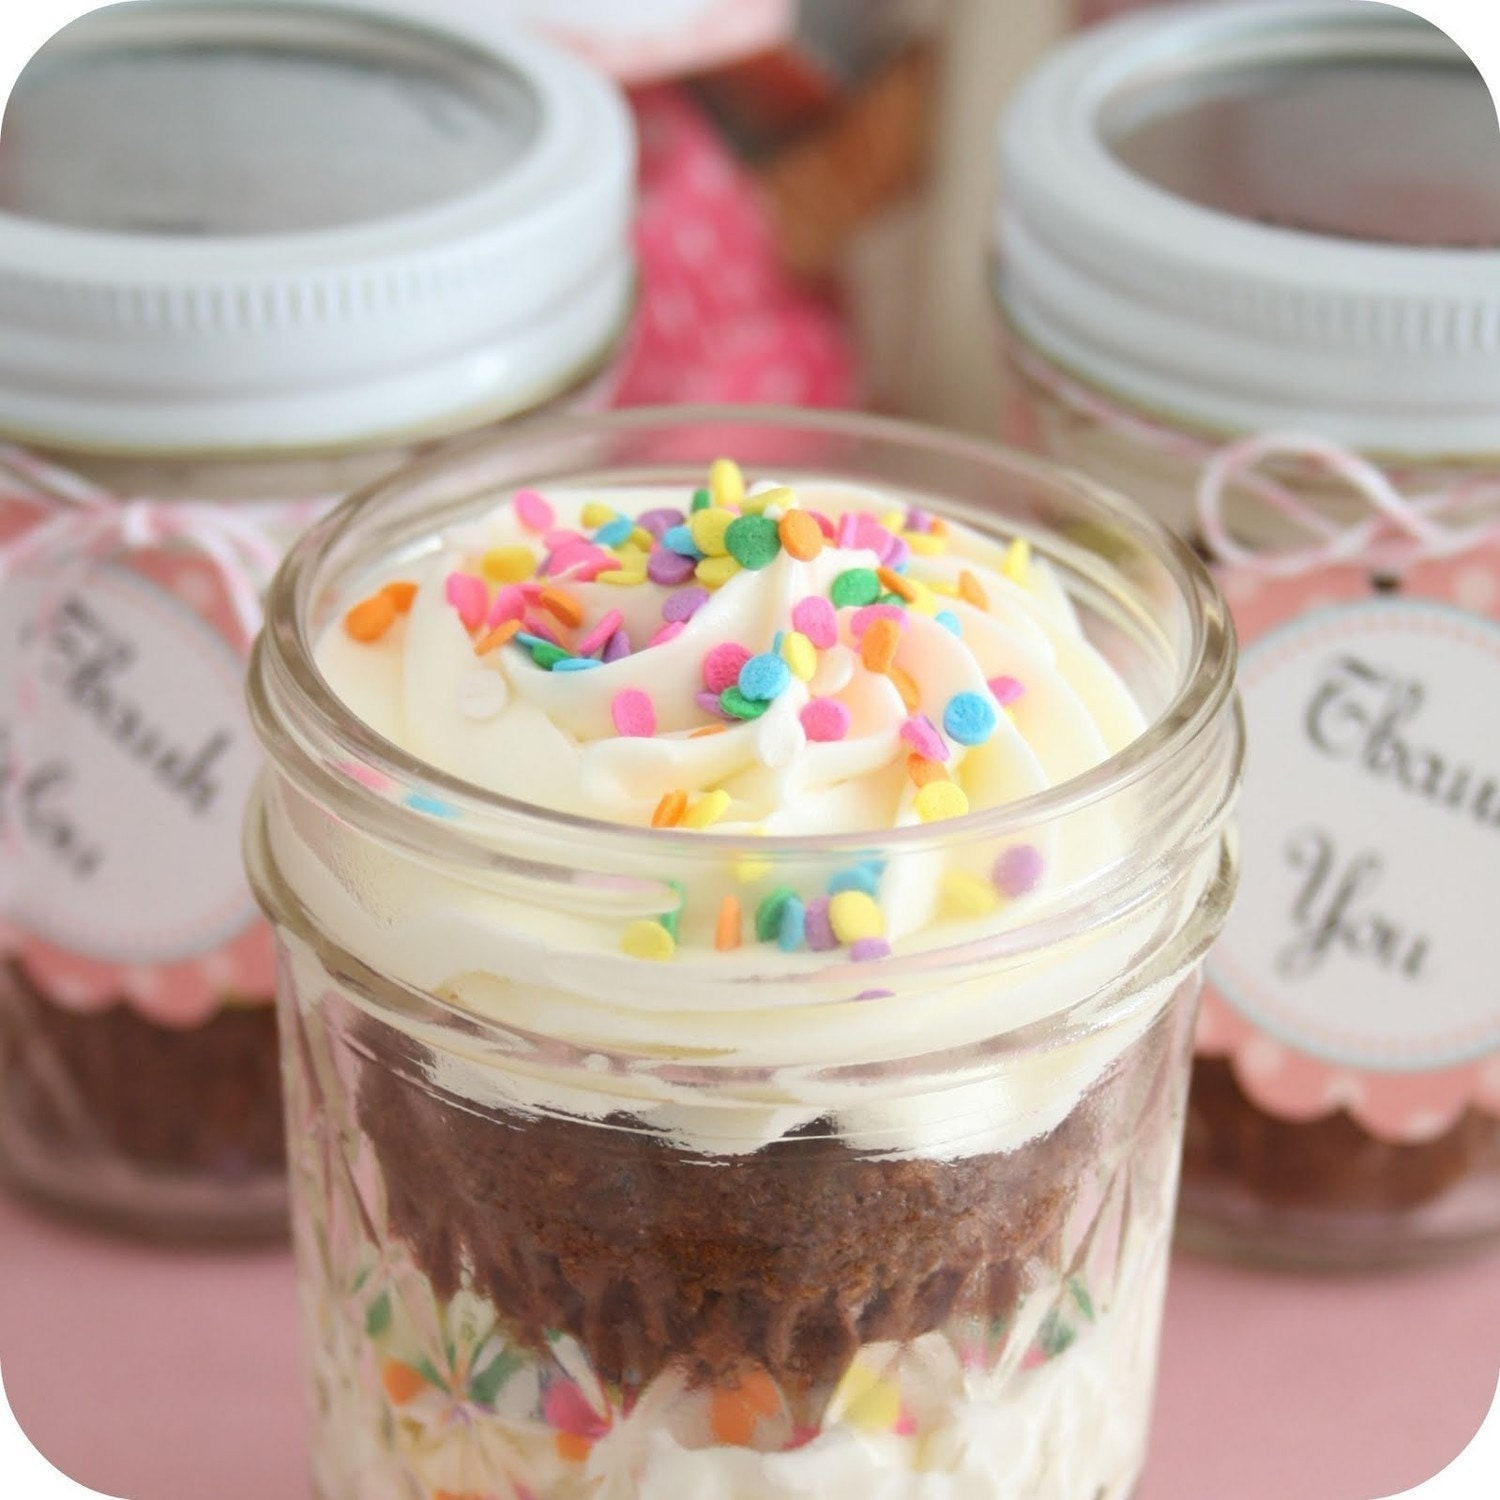 Cupcakes in a jar -   great sweet treat- Single serving